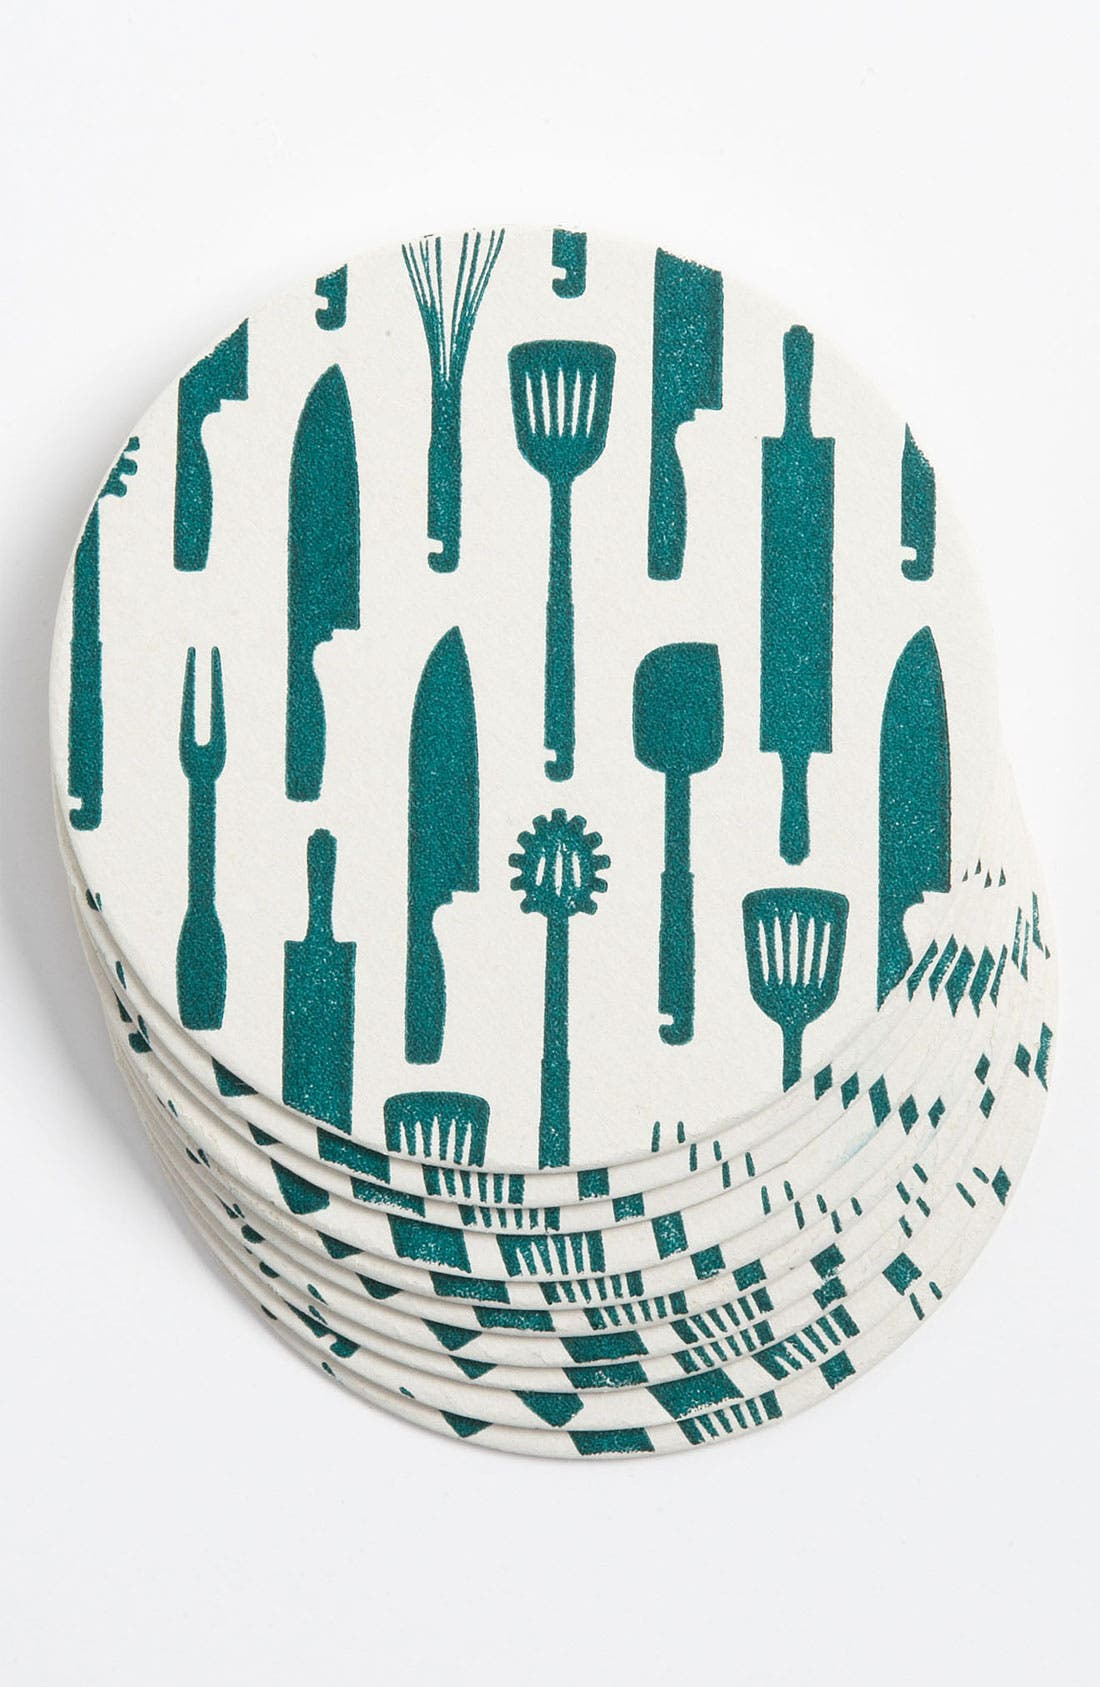 Main Image - 'Kitchen Utensils' Letterpress Coasters (Set of 10)